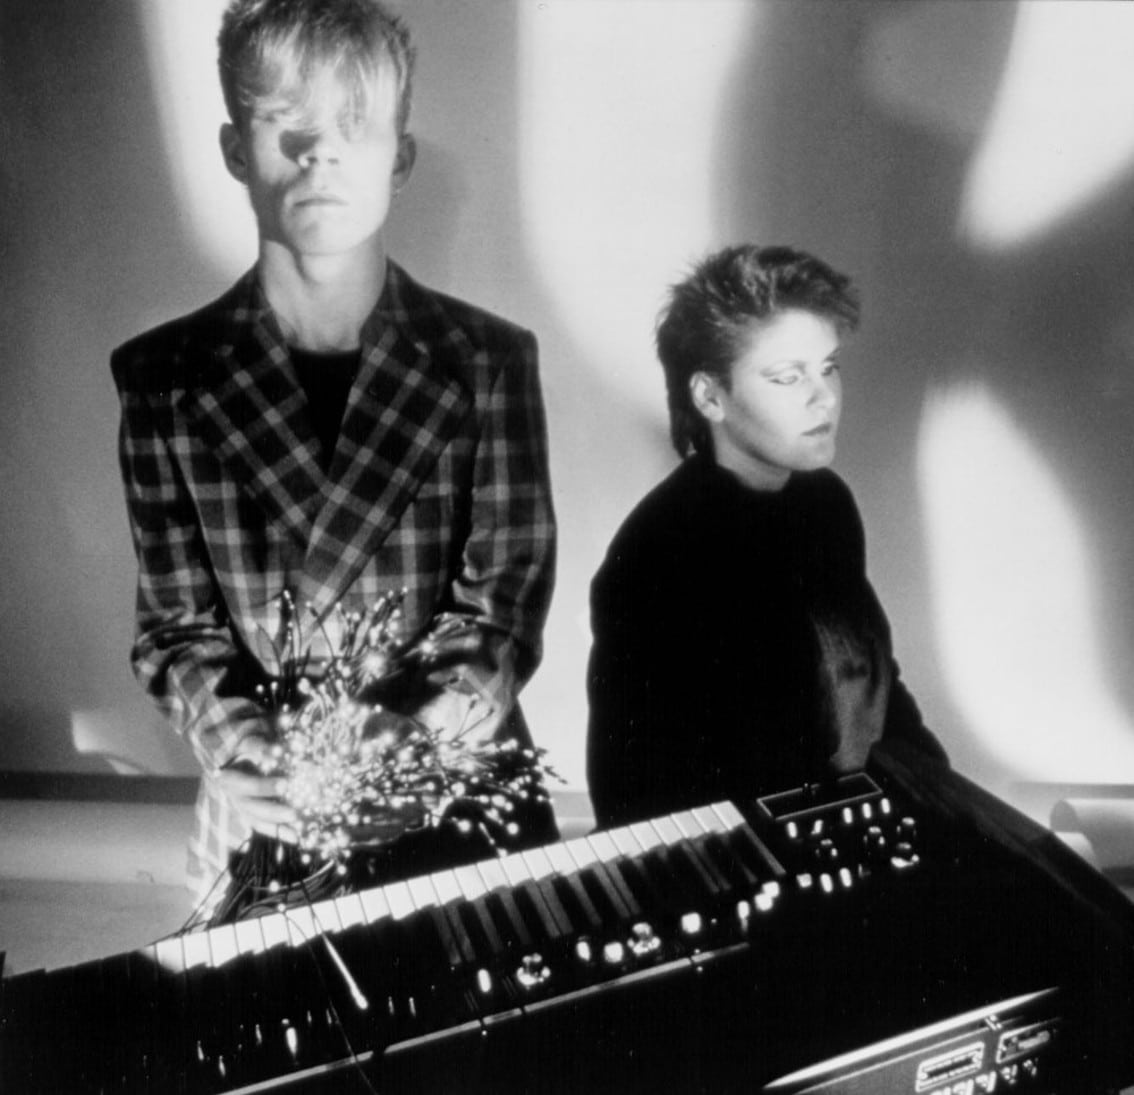 Brand new Yazoo remix for 'Winter Kills' to be featured on new vinyl and CD boxset - orders available now